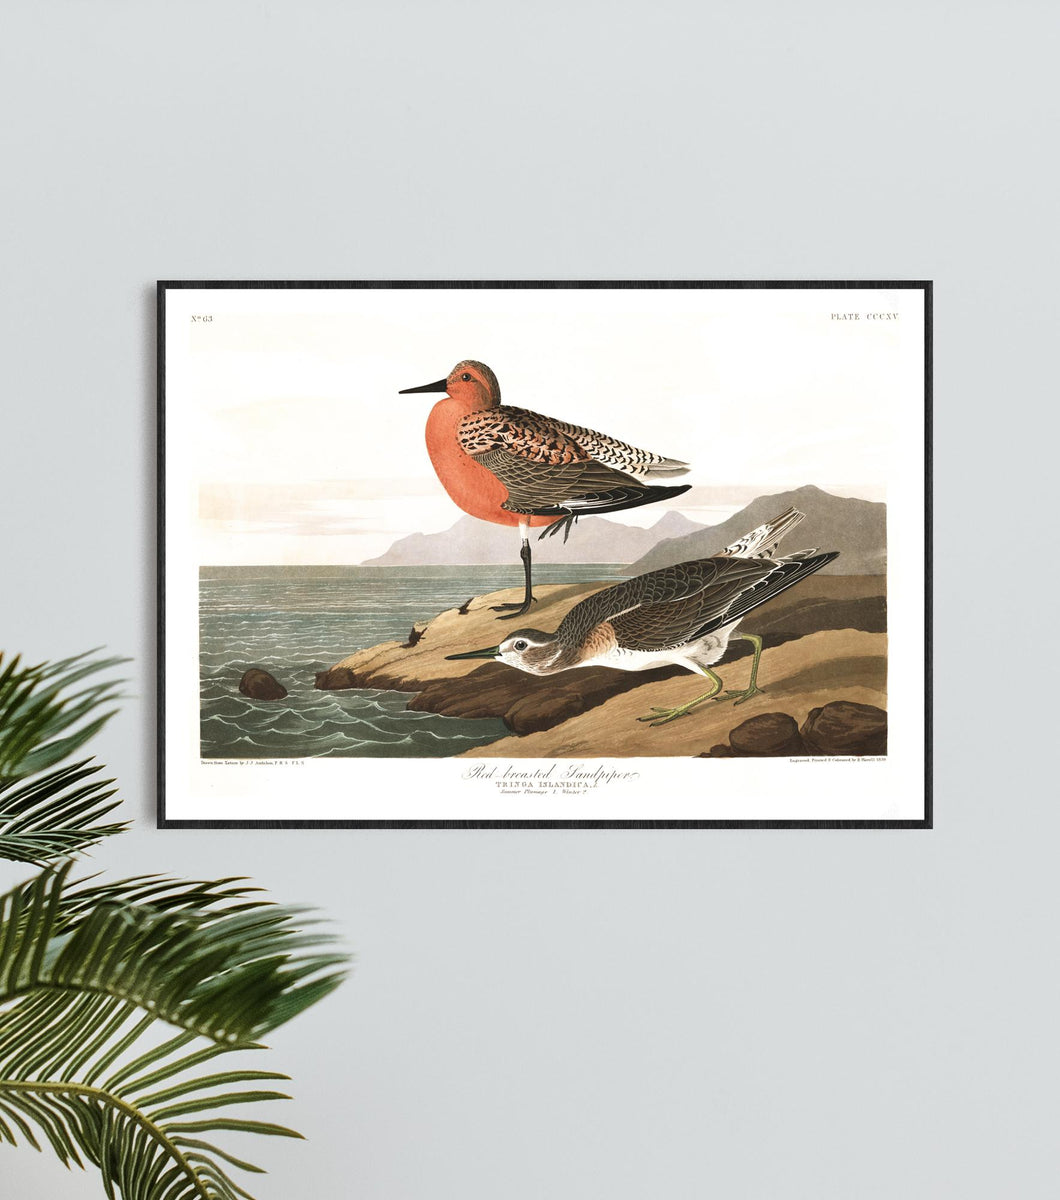 Red-Breasted Sandpiper Print by John Audubon